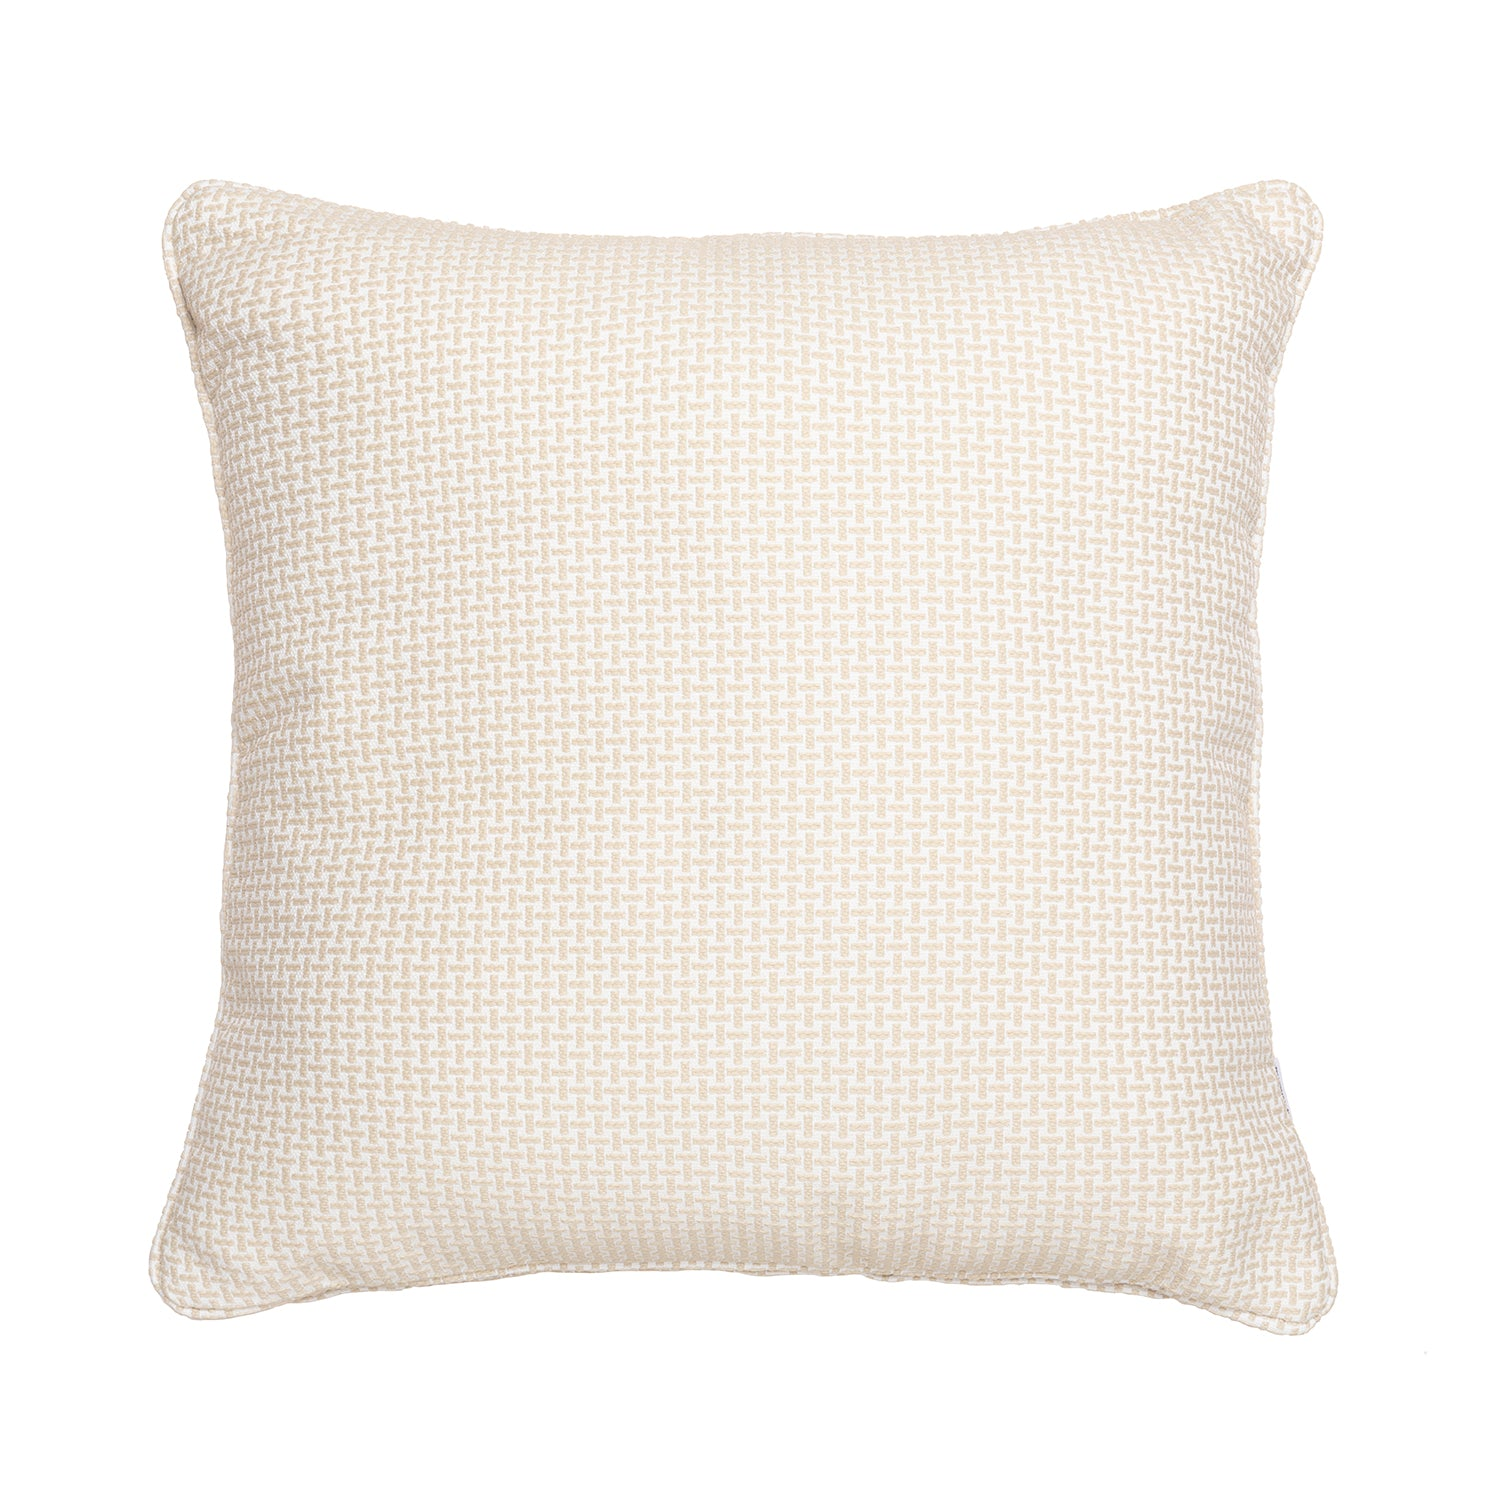 Paxos Scatter Cushion